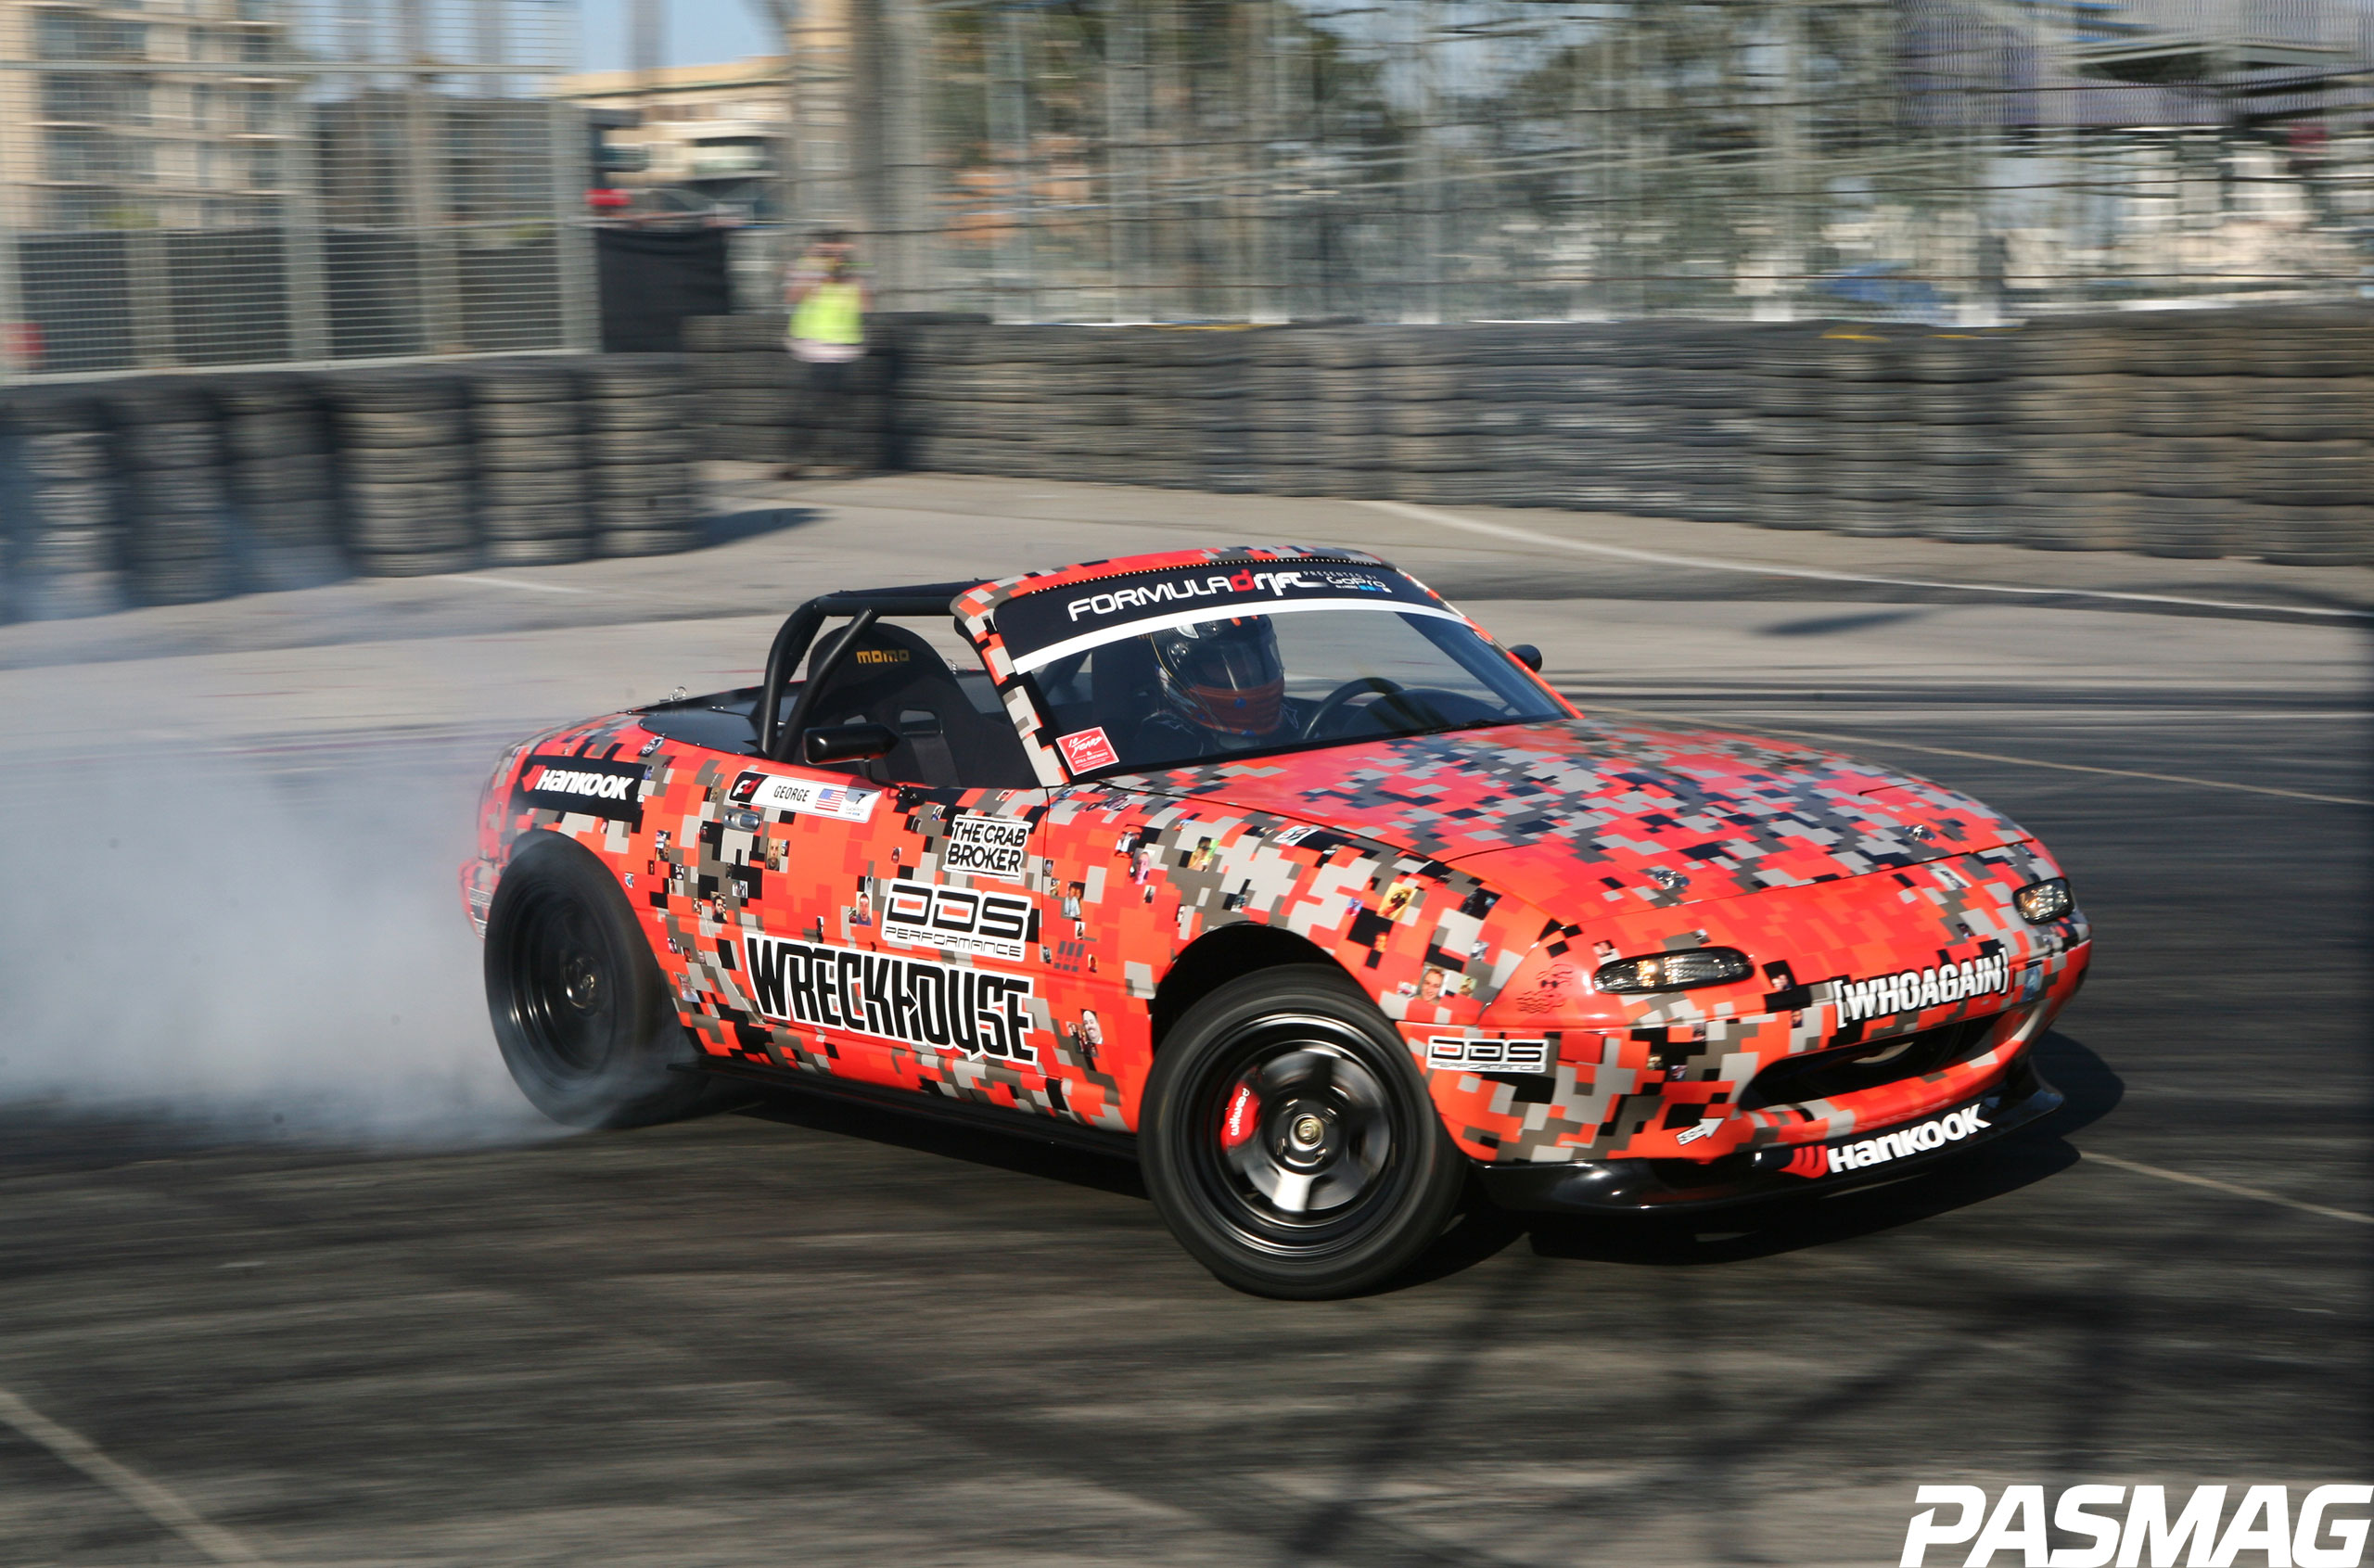 Pasmag Performance Auto And Sound Crowd Sourced Formula Drift